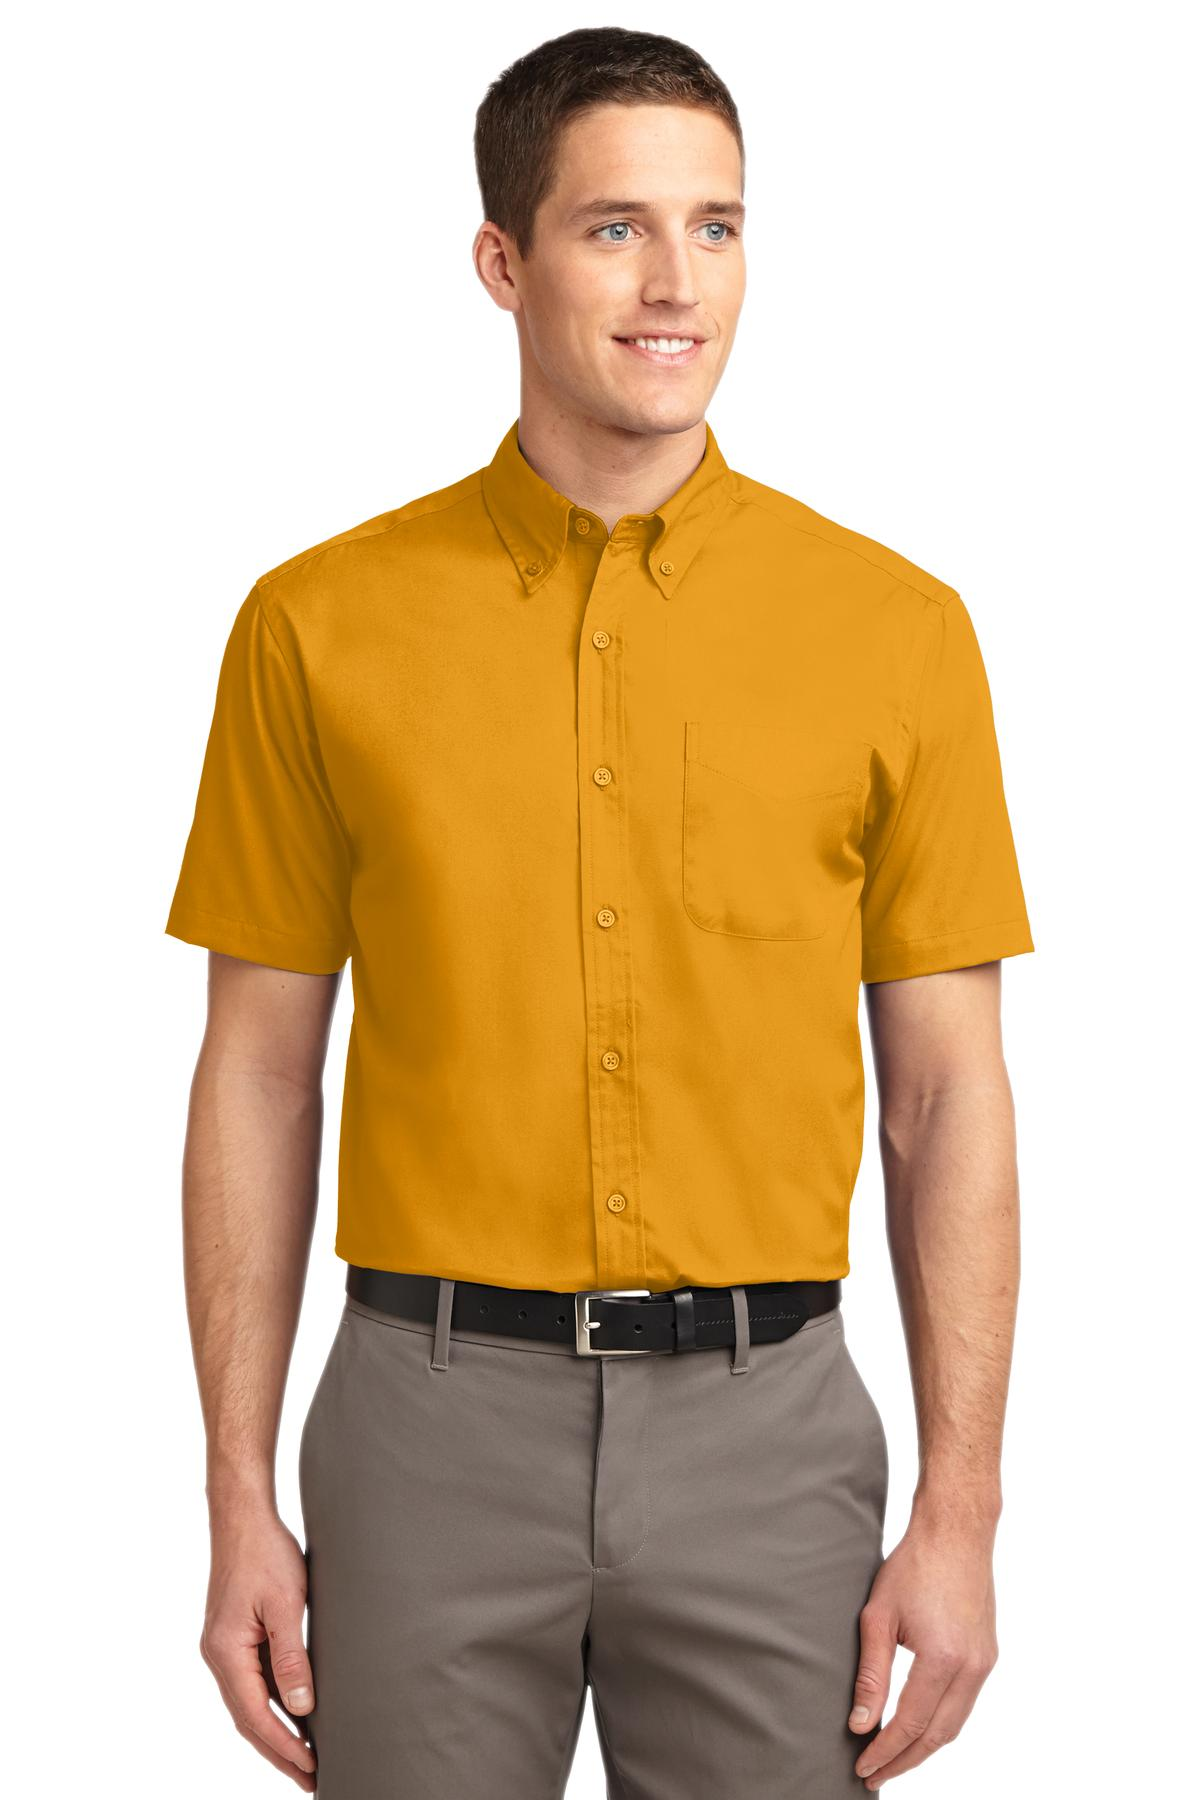 Port Authority ®  Short Sleeve Easy Care Shirt.  S508 - Athletic Gold/ Light Stone